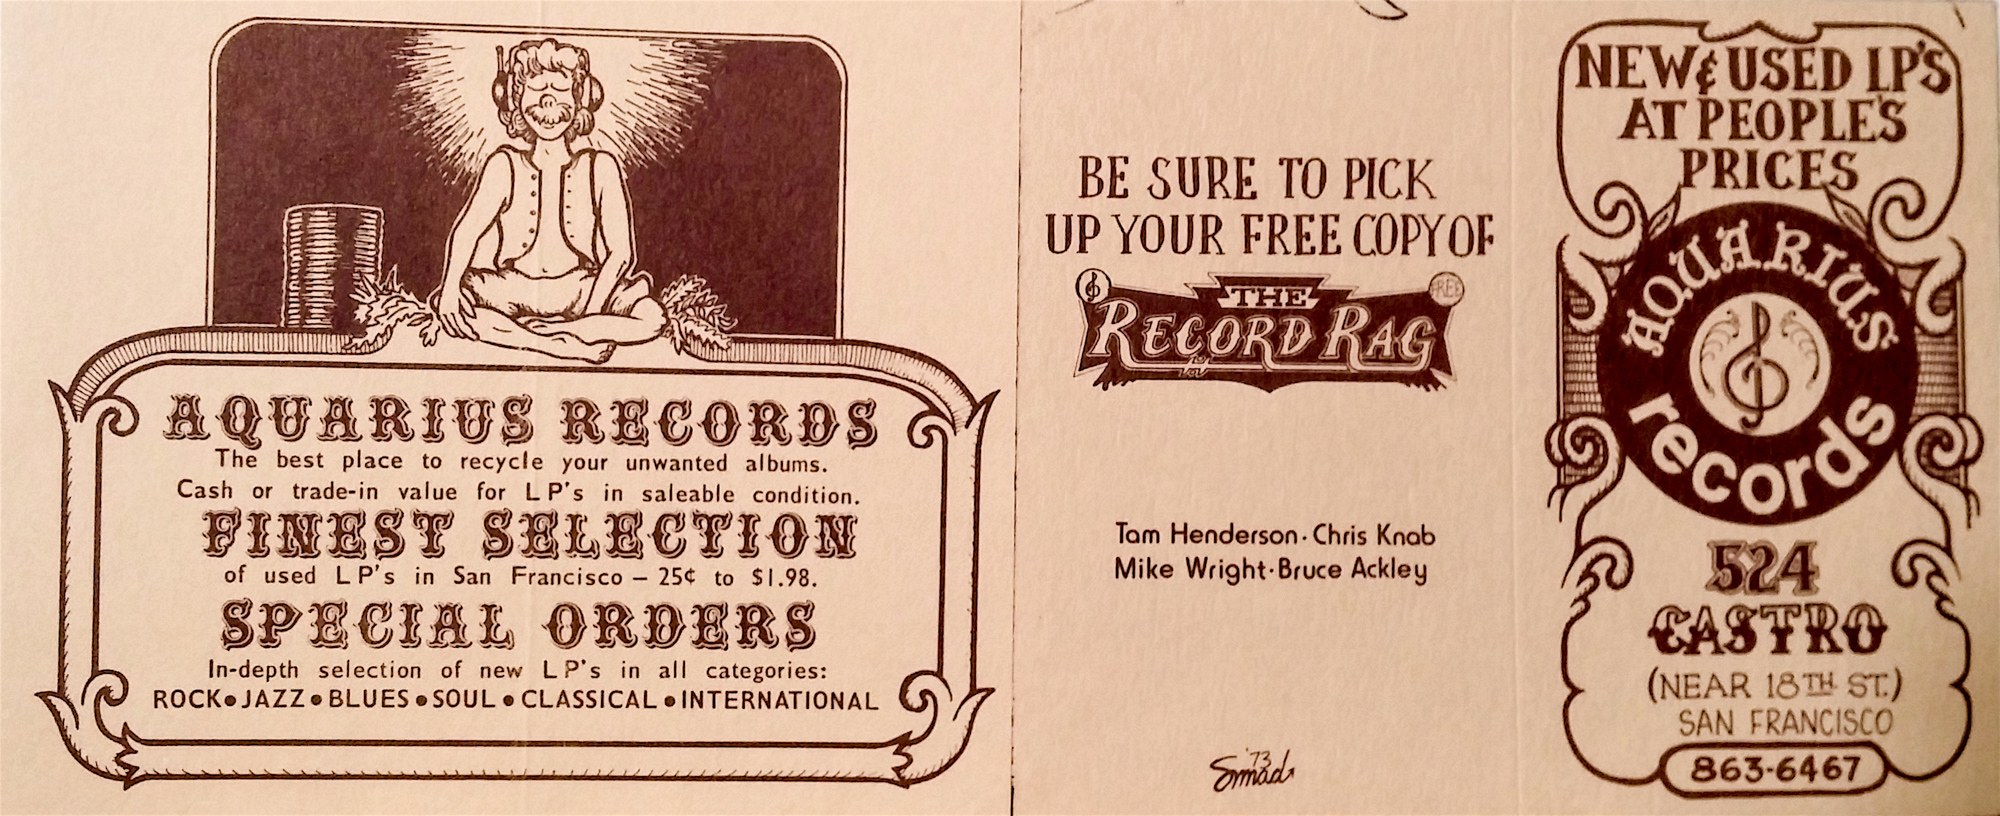 Little promo card for the store, early 70's.